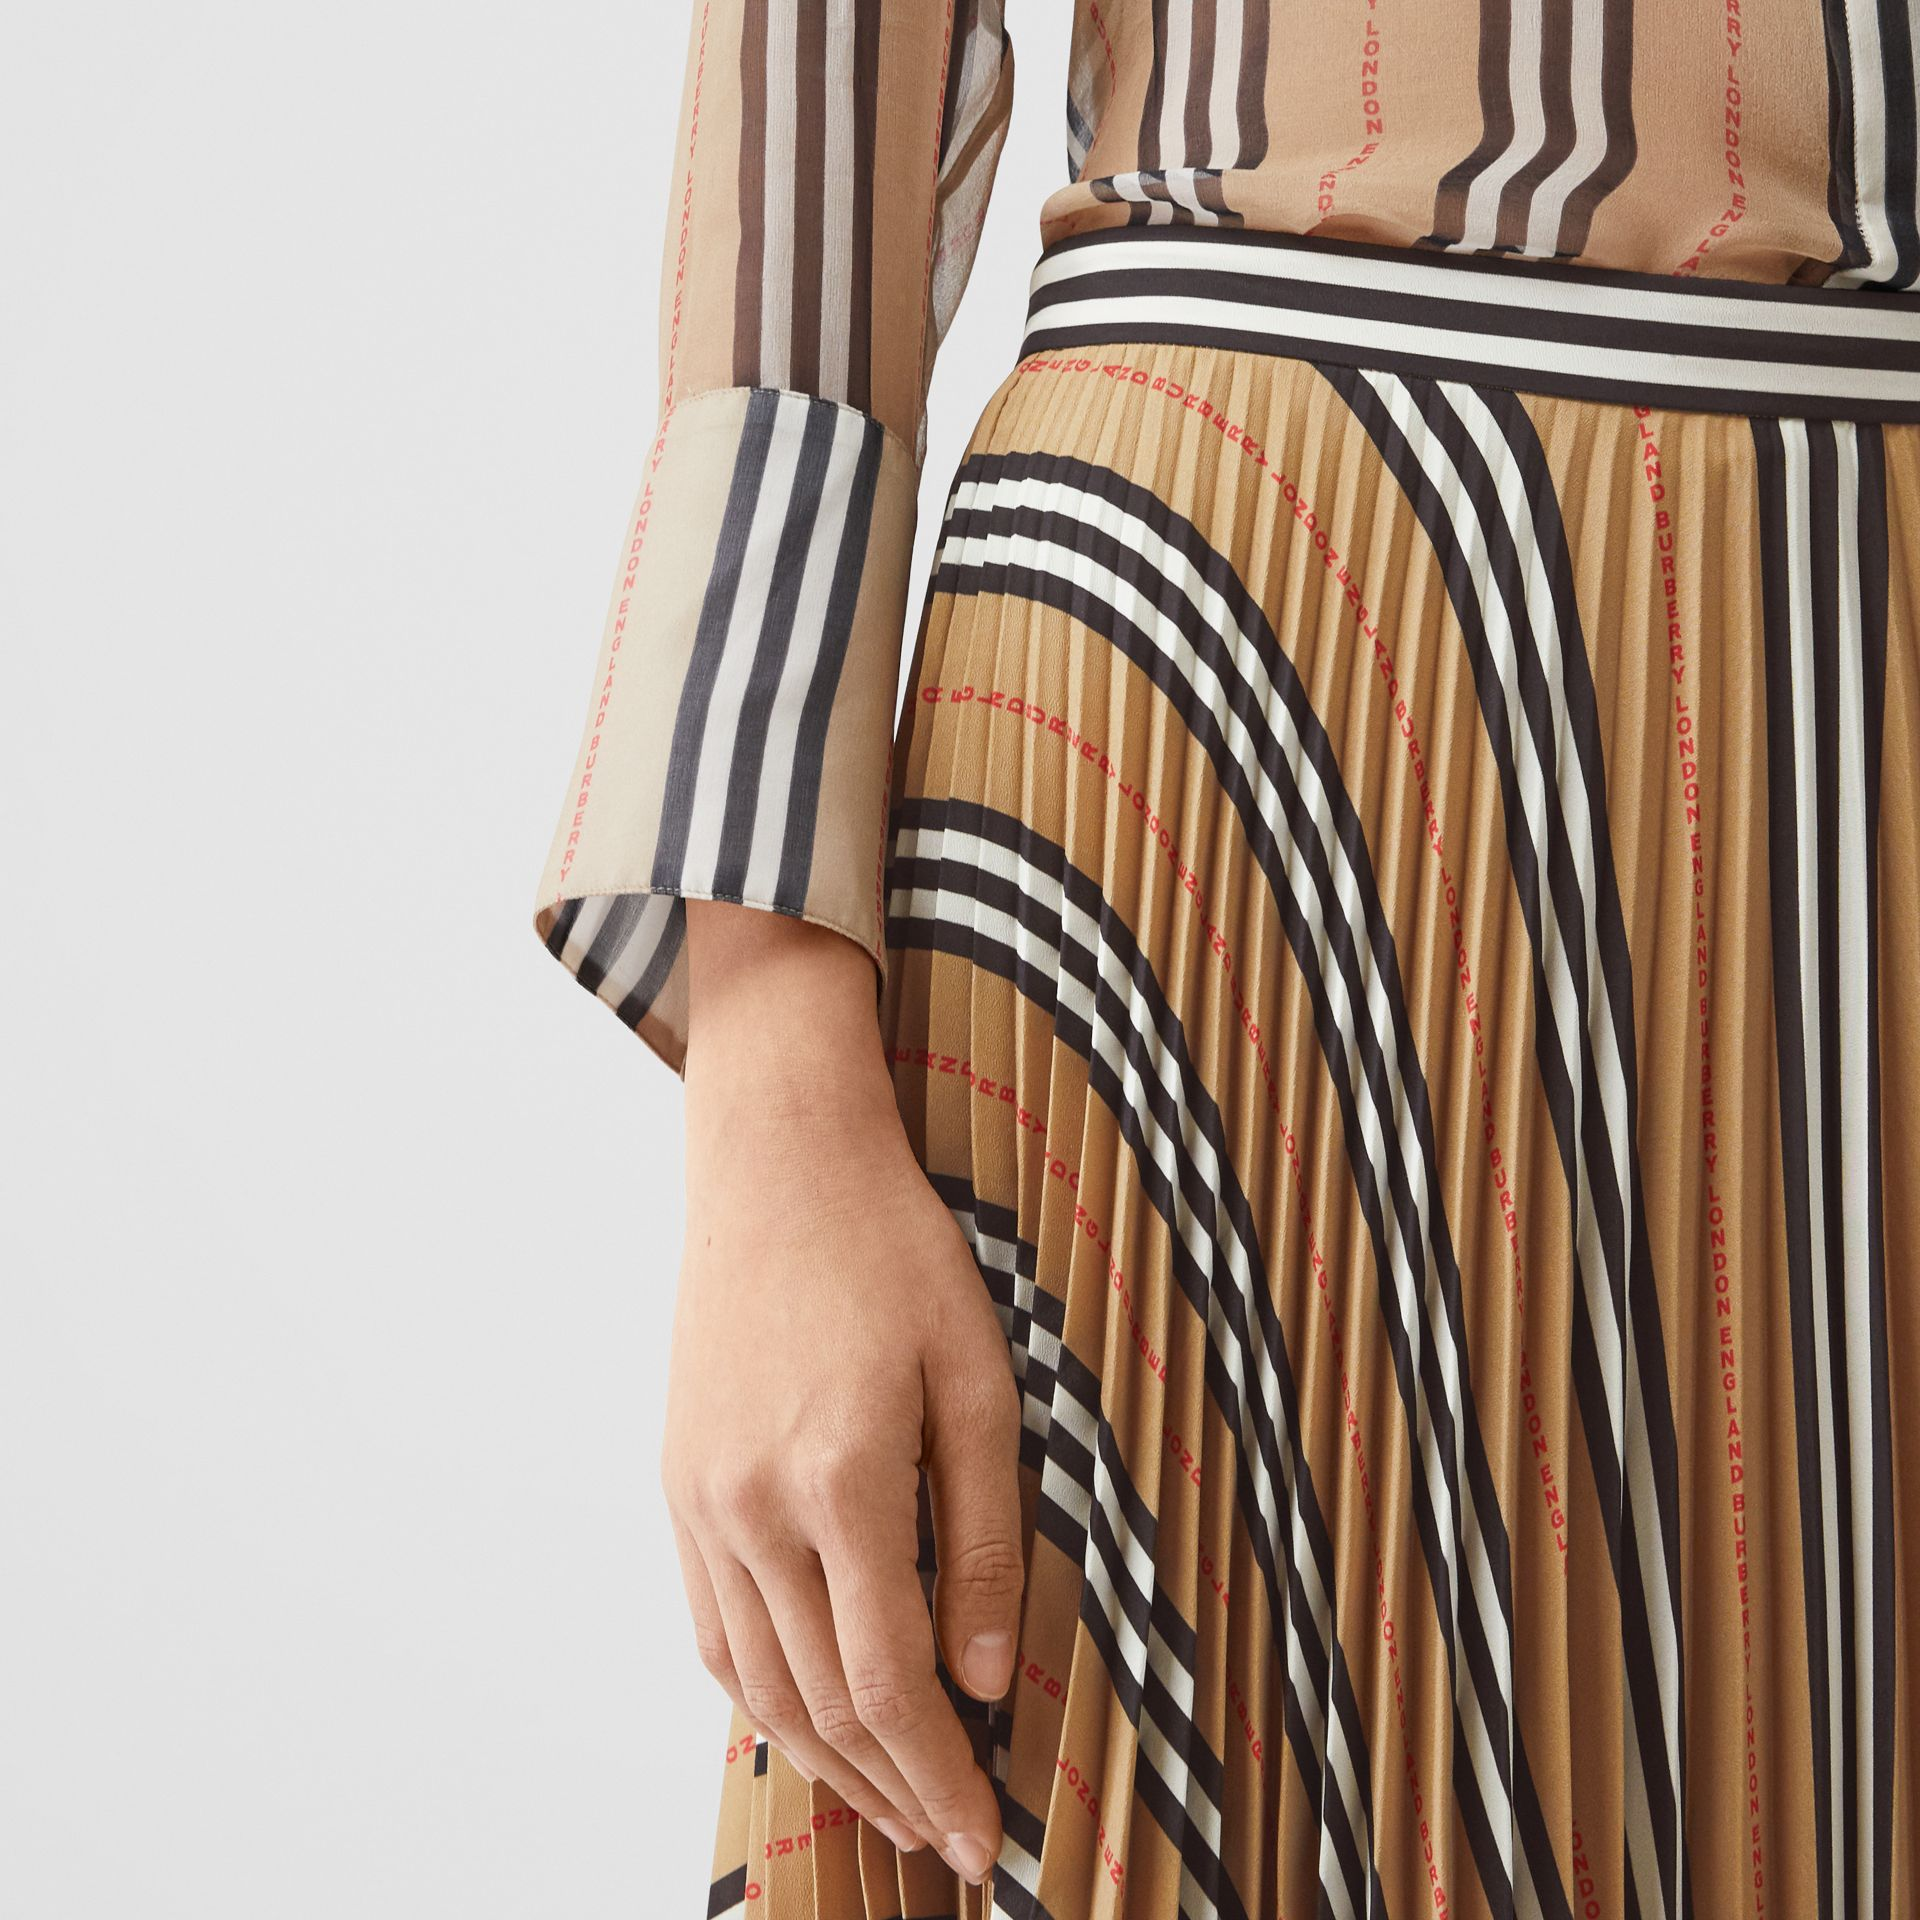 Logo and Stripe Print Crepe Pleated Skirt in Archive Beige - Women | Burberry - gallery image 1